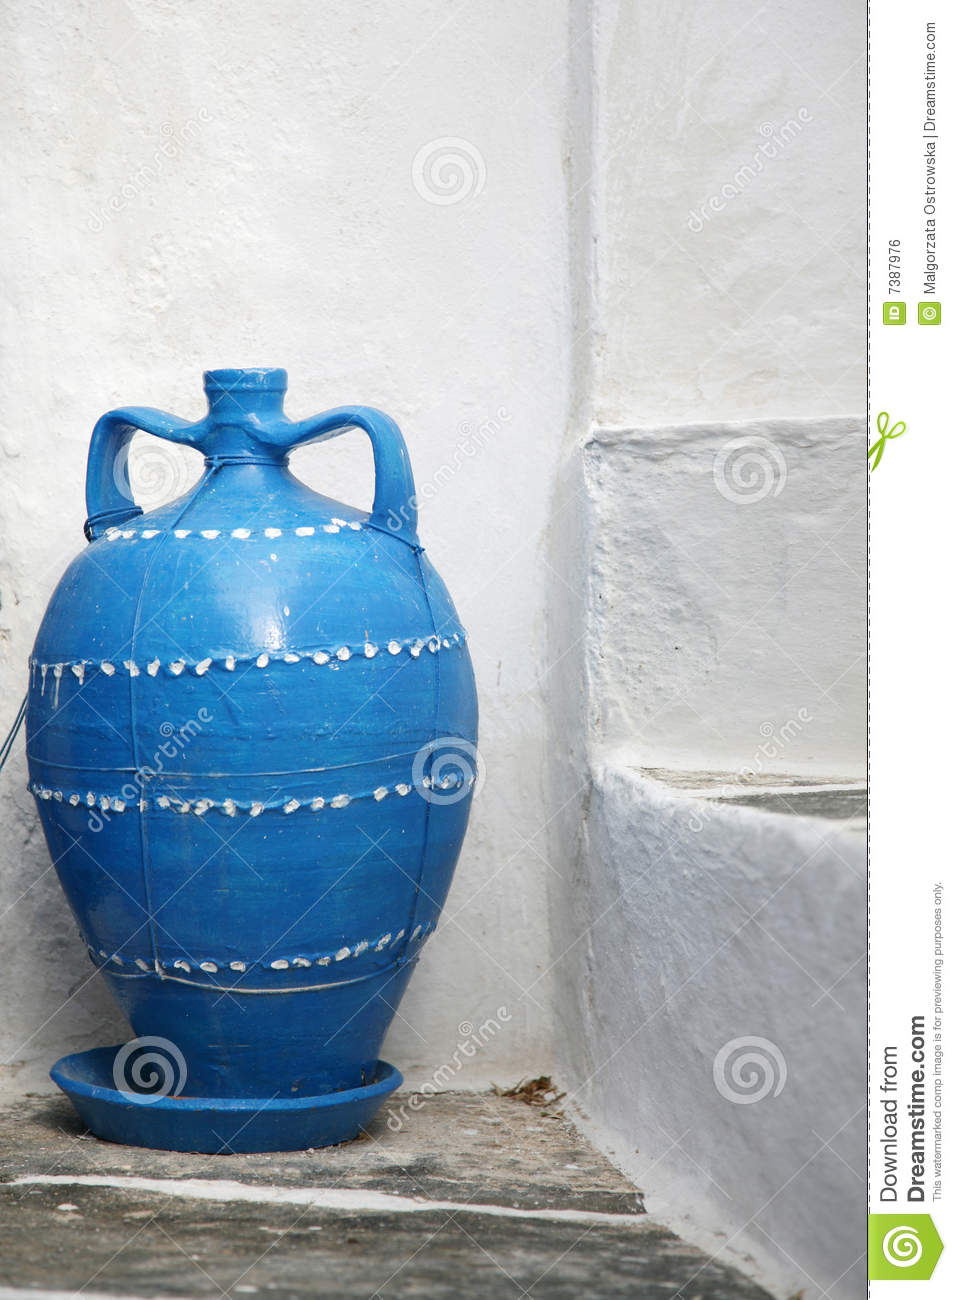 blue greek vase stock photo image of wall exterior. Black Bedroom Furniture Sets. Home Design Ideas